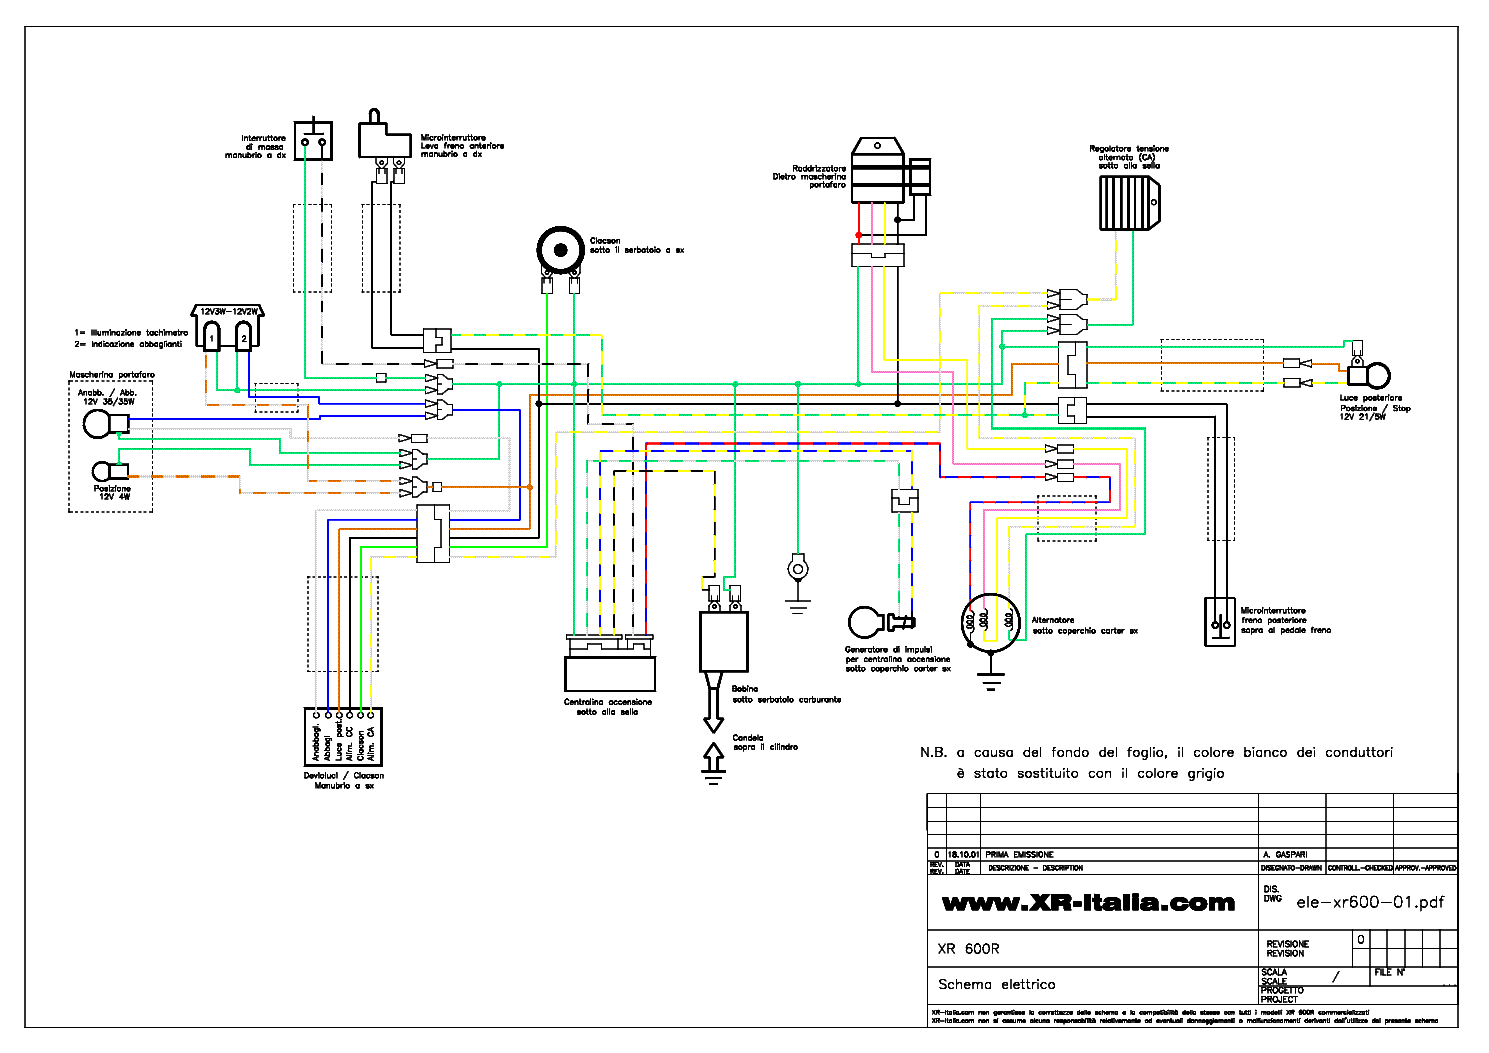 Honda Xr600 Wiring Diagram xr400 wiring diagram xr250r ... on lighting diagrams, hvac diagrams, smart car diagrams, gmc fuse box diagrams, internet of things diagrams, pinout diagrams, troubleshooting diagrams, friendship bracelet diagrams, switch diagrams, honda motorcycle repair diagrams, engine diagrams, transformer diagrams, motor diagrams, led circuit diagrams, electrical diagrams, sincgars radio configurations diagrams, series and parallel circuits diagrams, electronic circuit diagrams, battery diagrams,